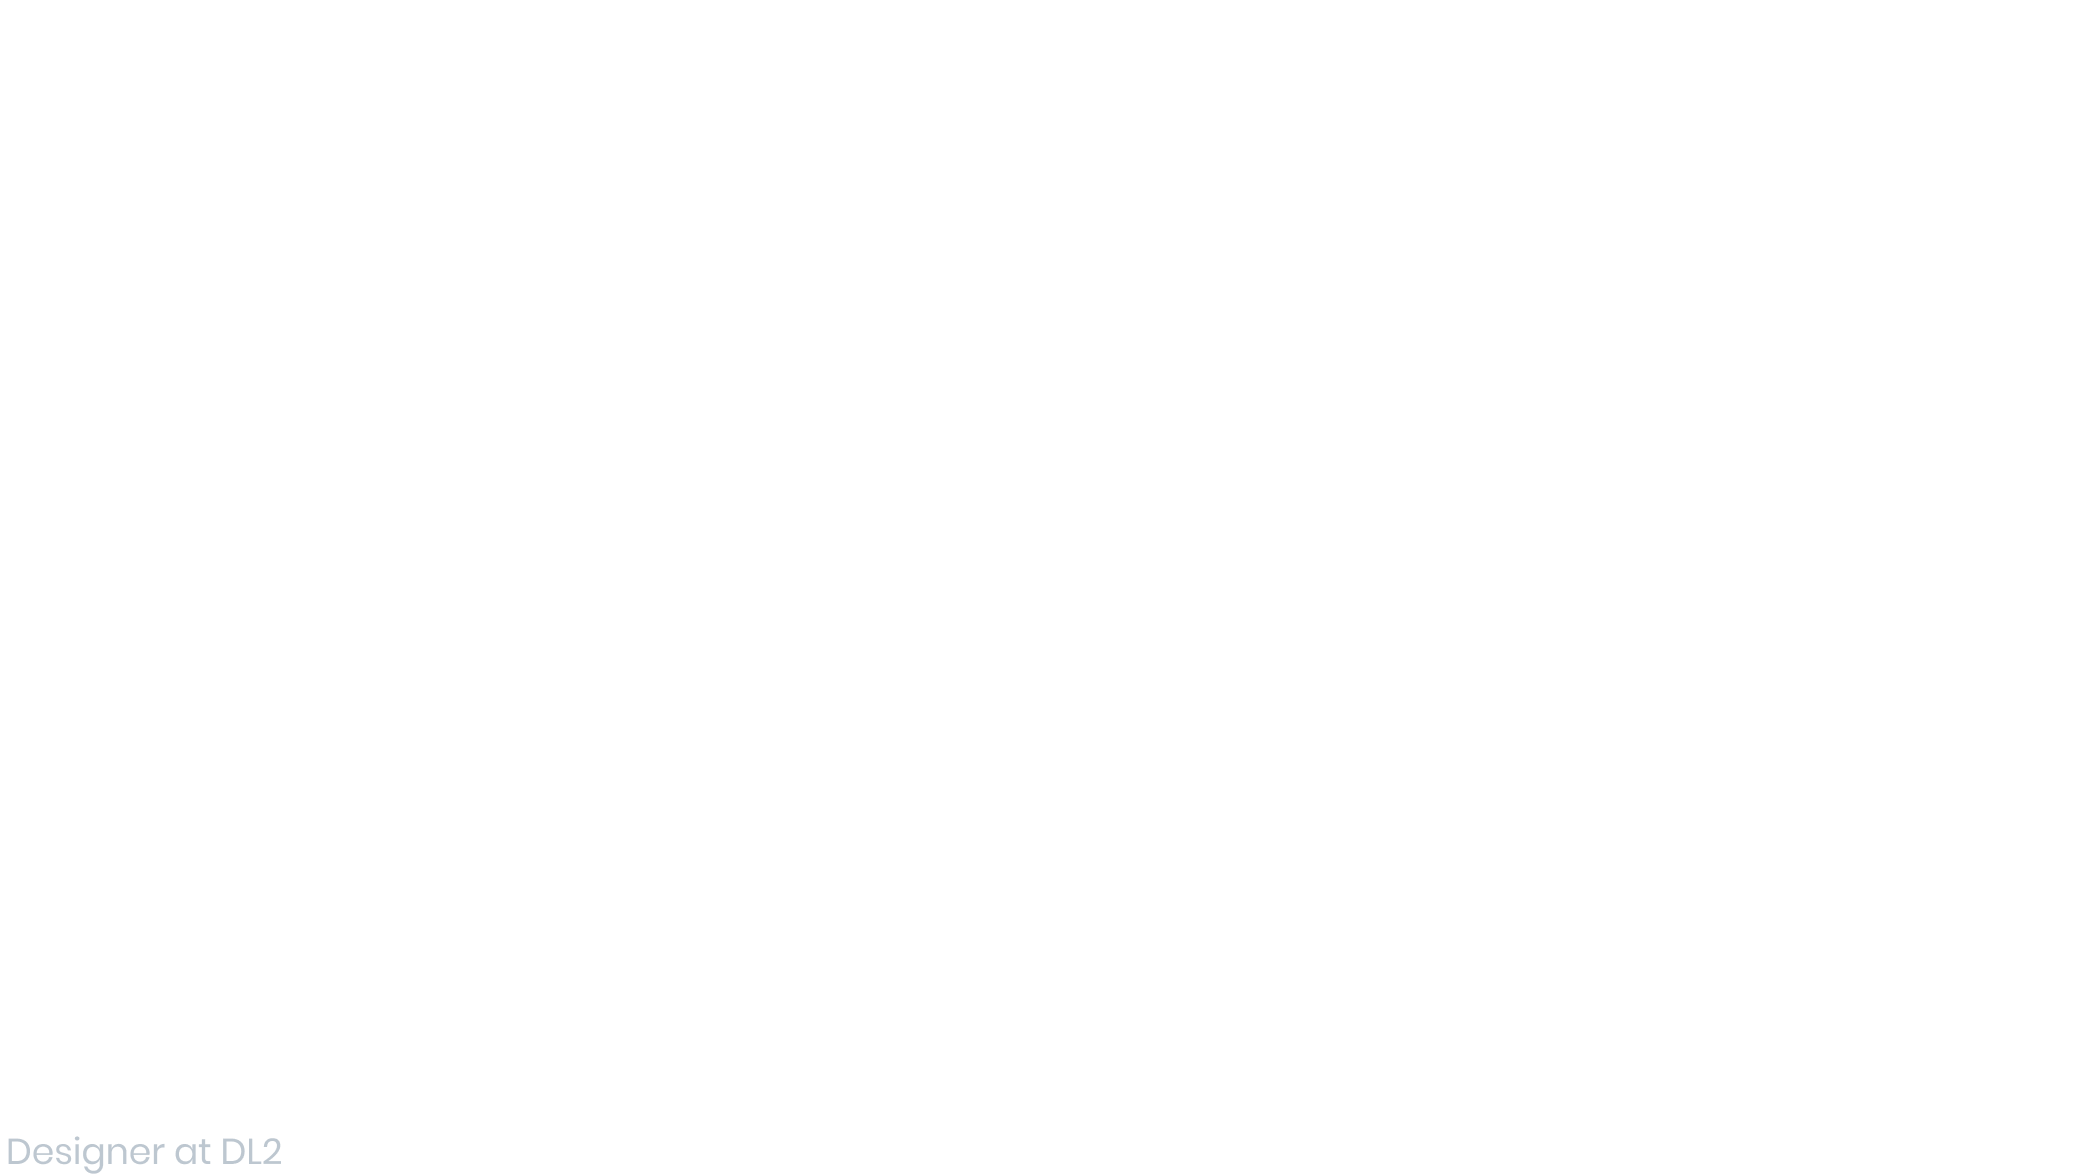 Submitting assignments and receiving feedback kept me motivated and further helped solidify 